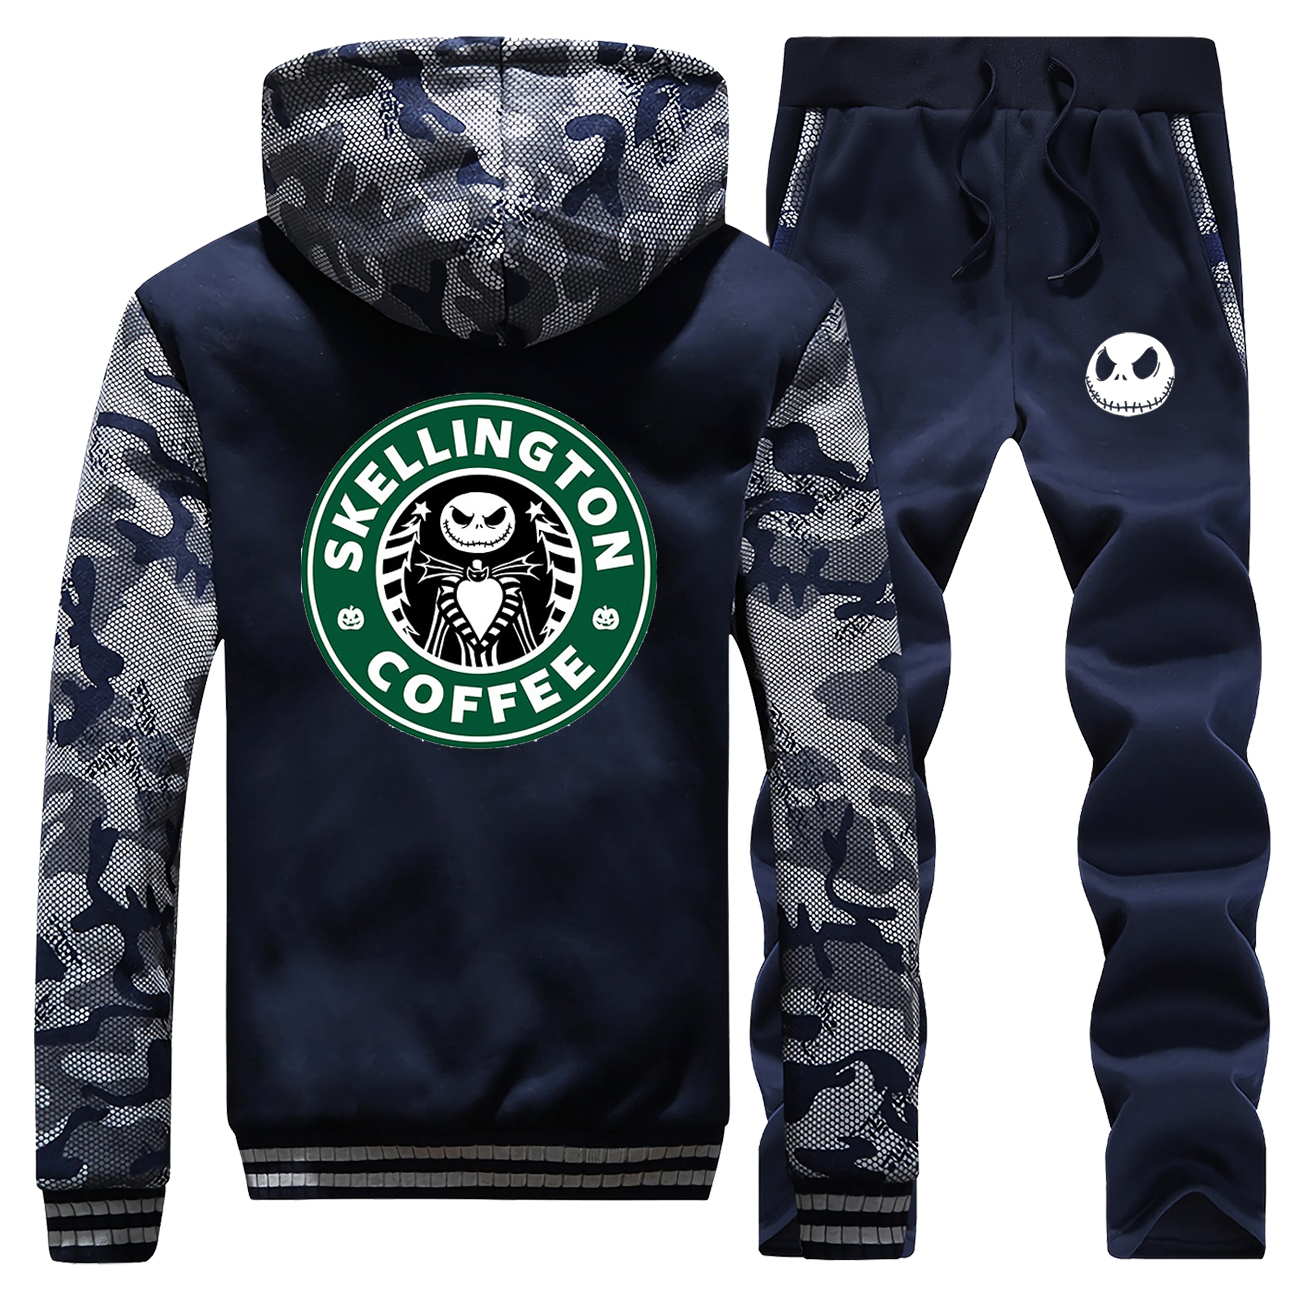 Skellington Coffee Print Male Set Camo Jack Brand Warm Tracksuit Night Mare Fleece Thick Men's Sets Winter Casual Hooded Jackets